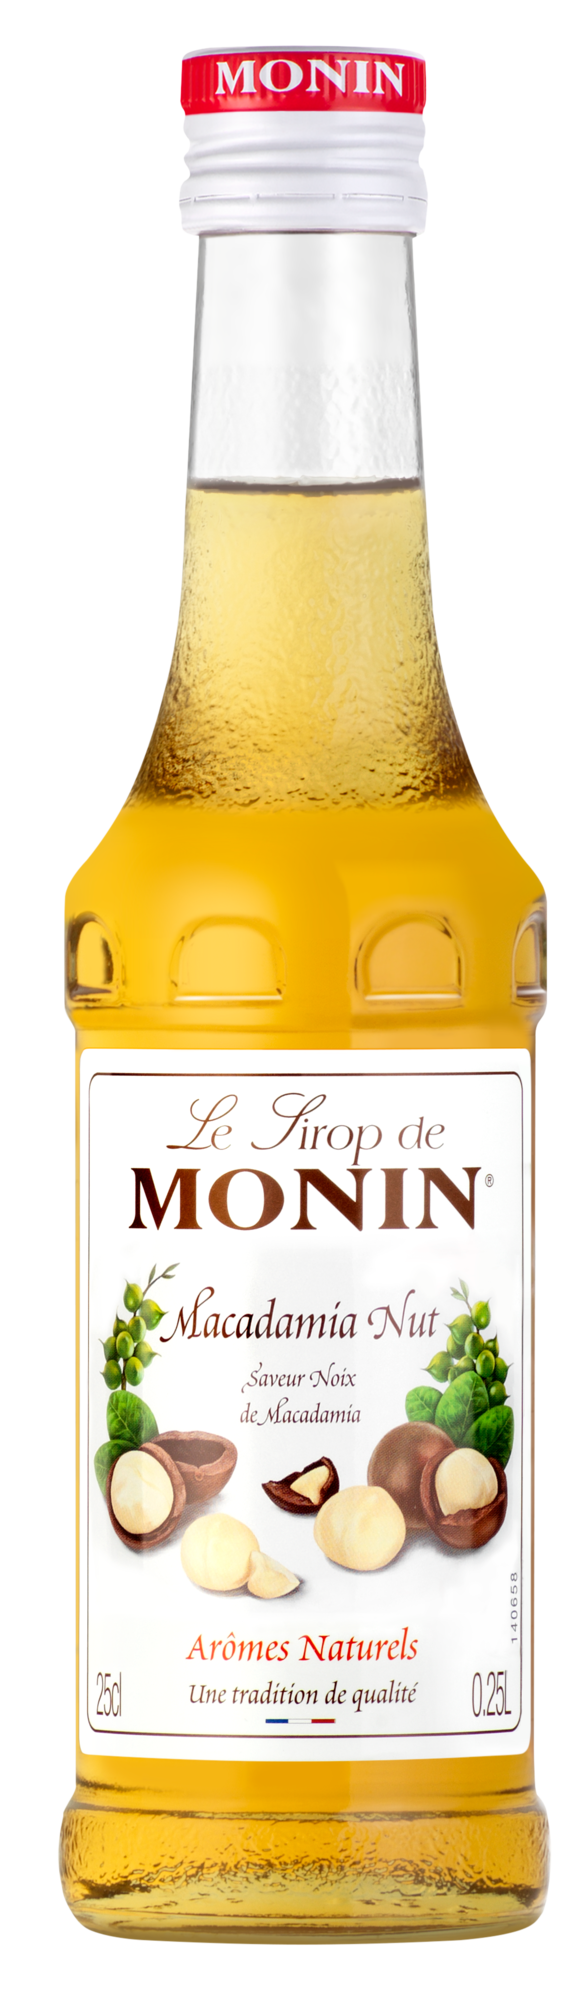 Monin Siroop Macadamia 250ml